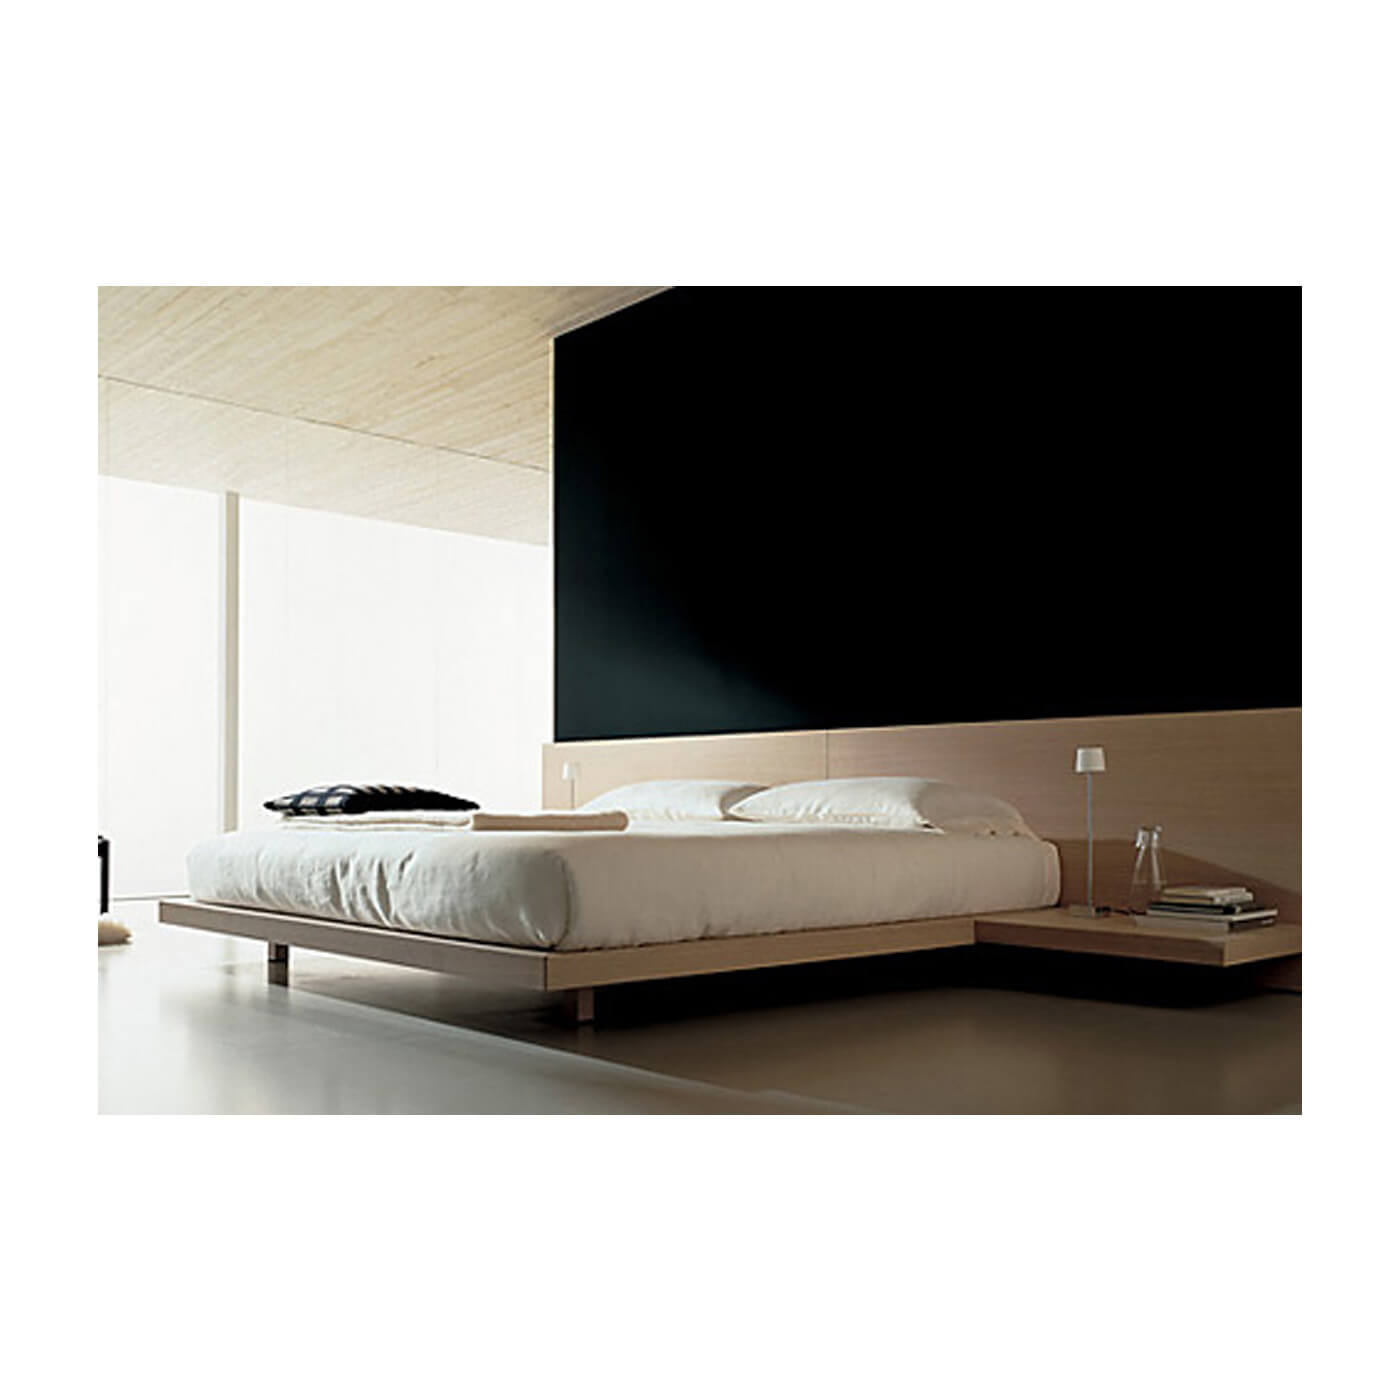 Poliform Ando king sized bed